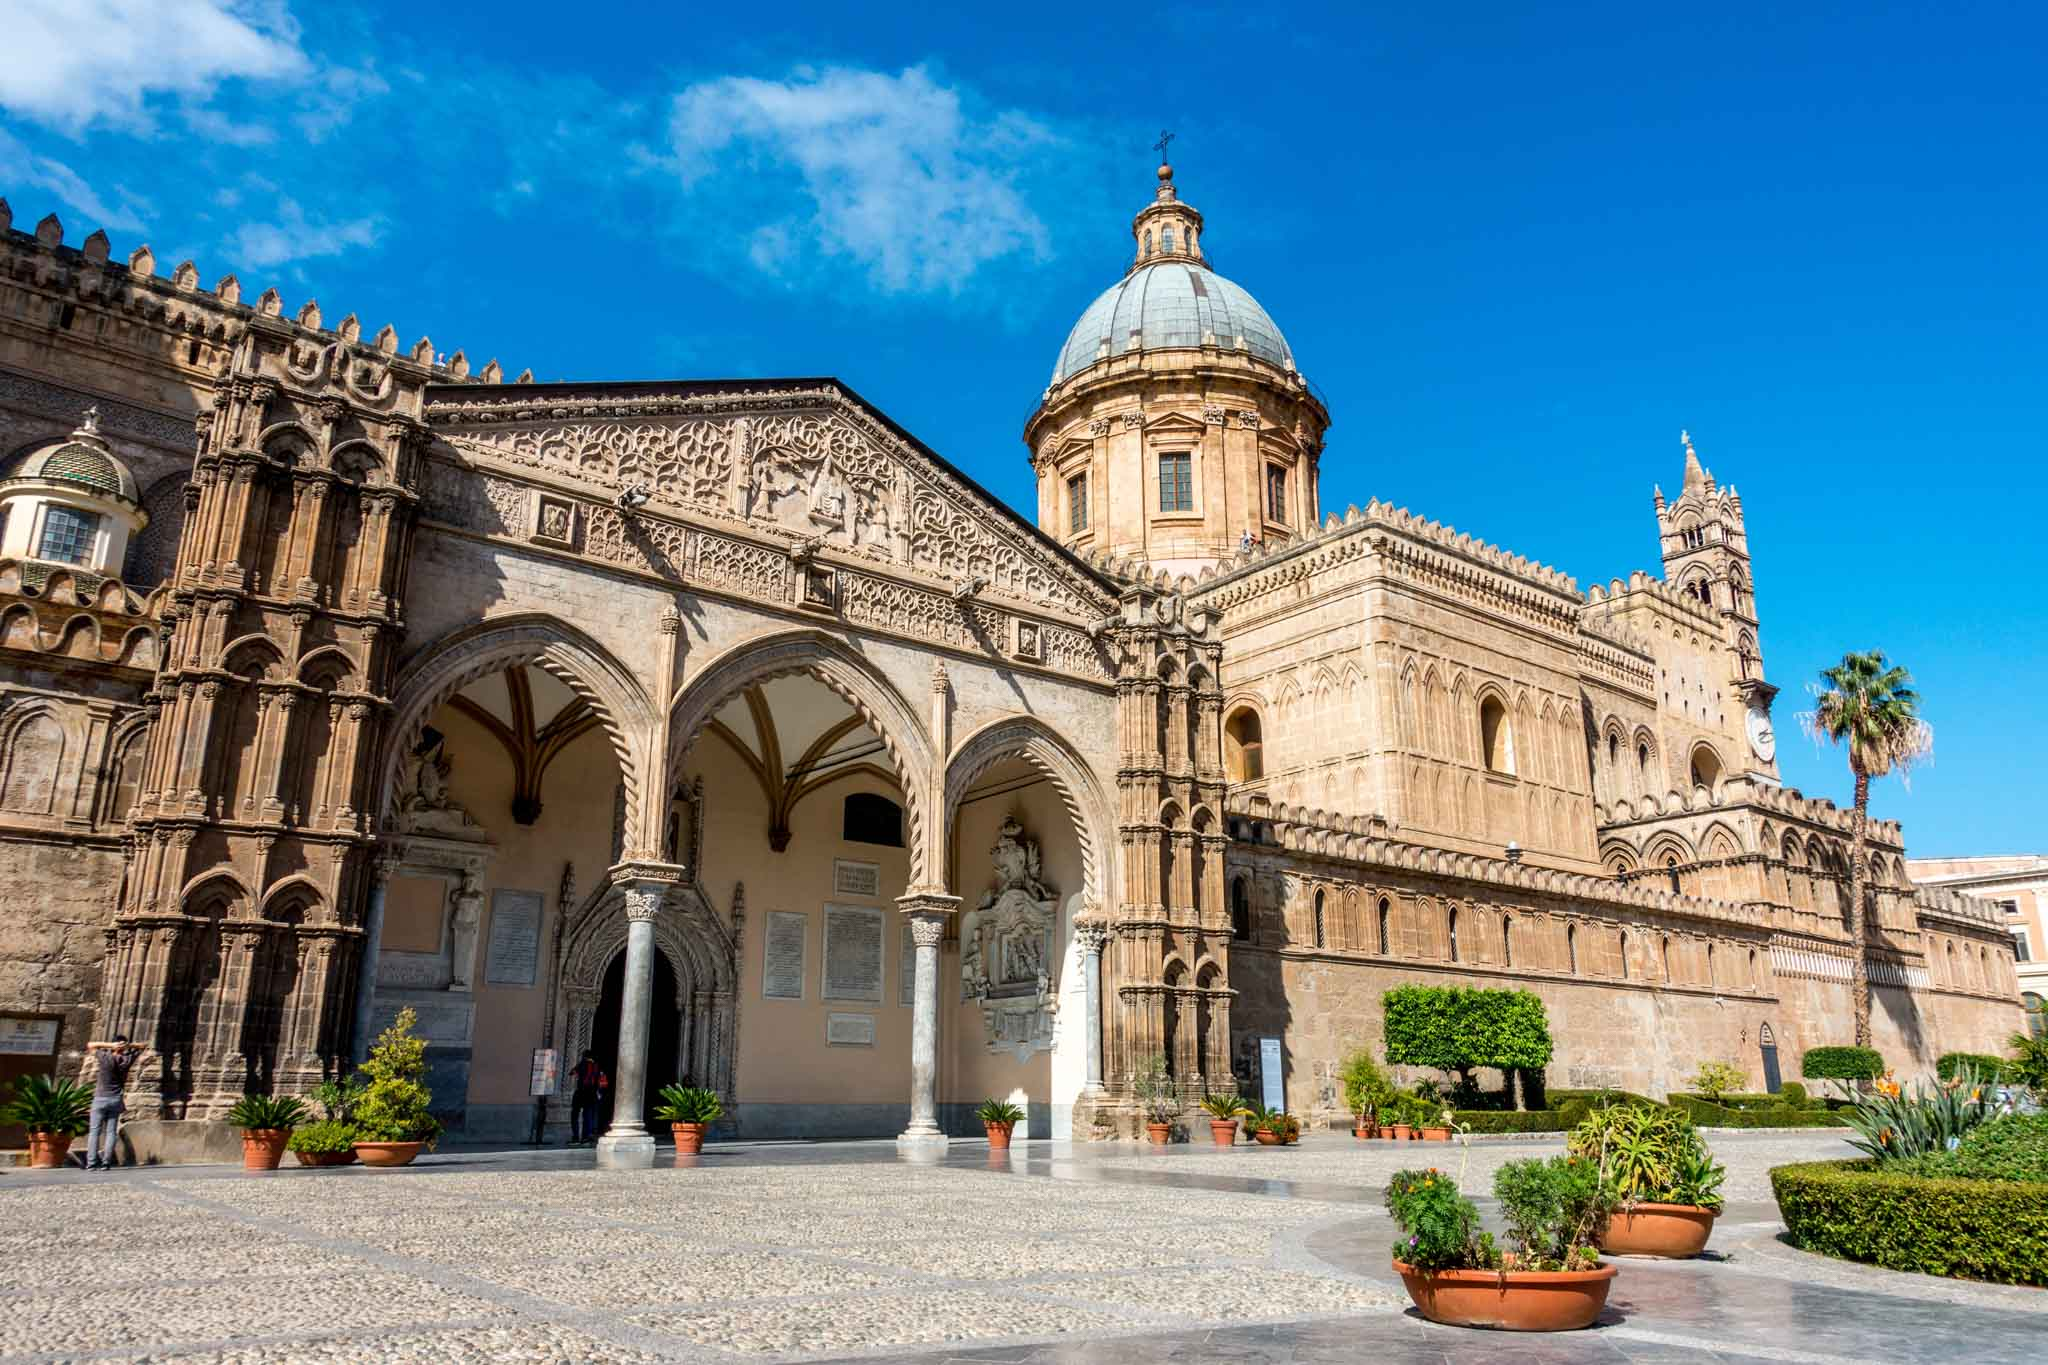 Exterior of Palermo Cathedral, a large stone building with domed roof